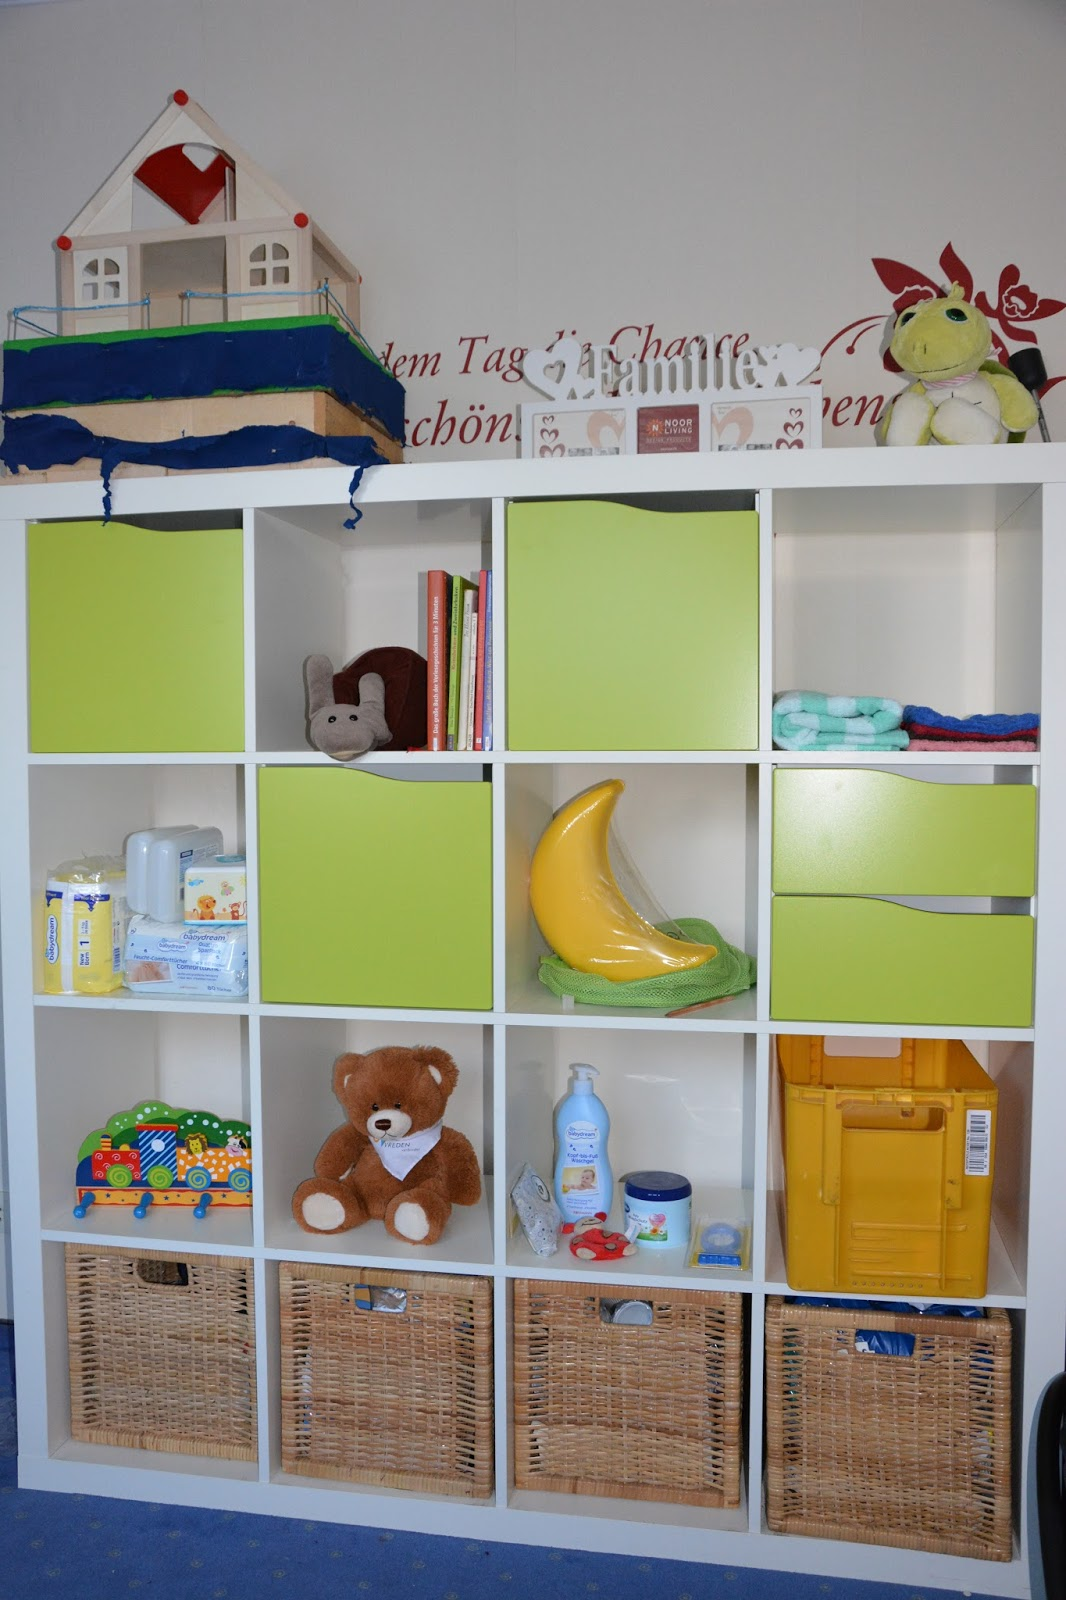 Ikea Regal Kallax Kinderzimmer  gispatcher.com